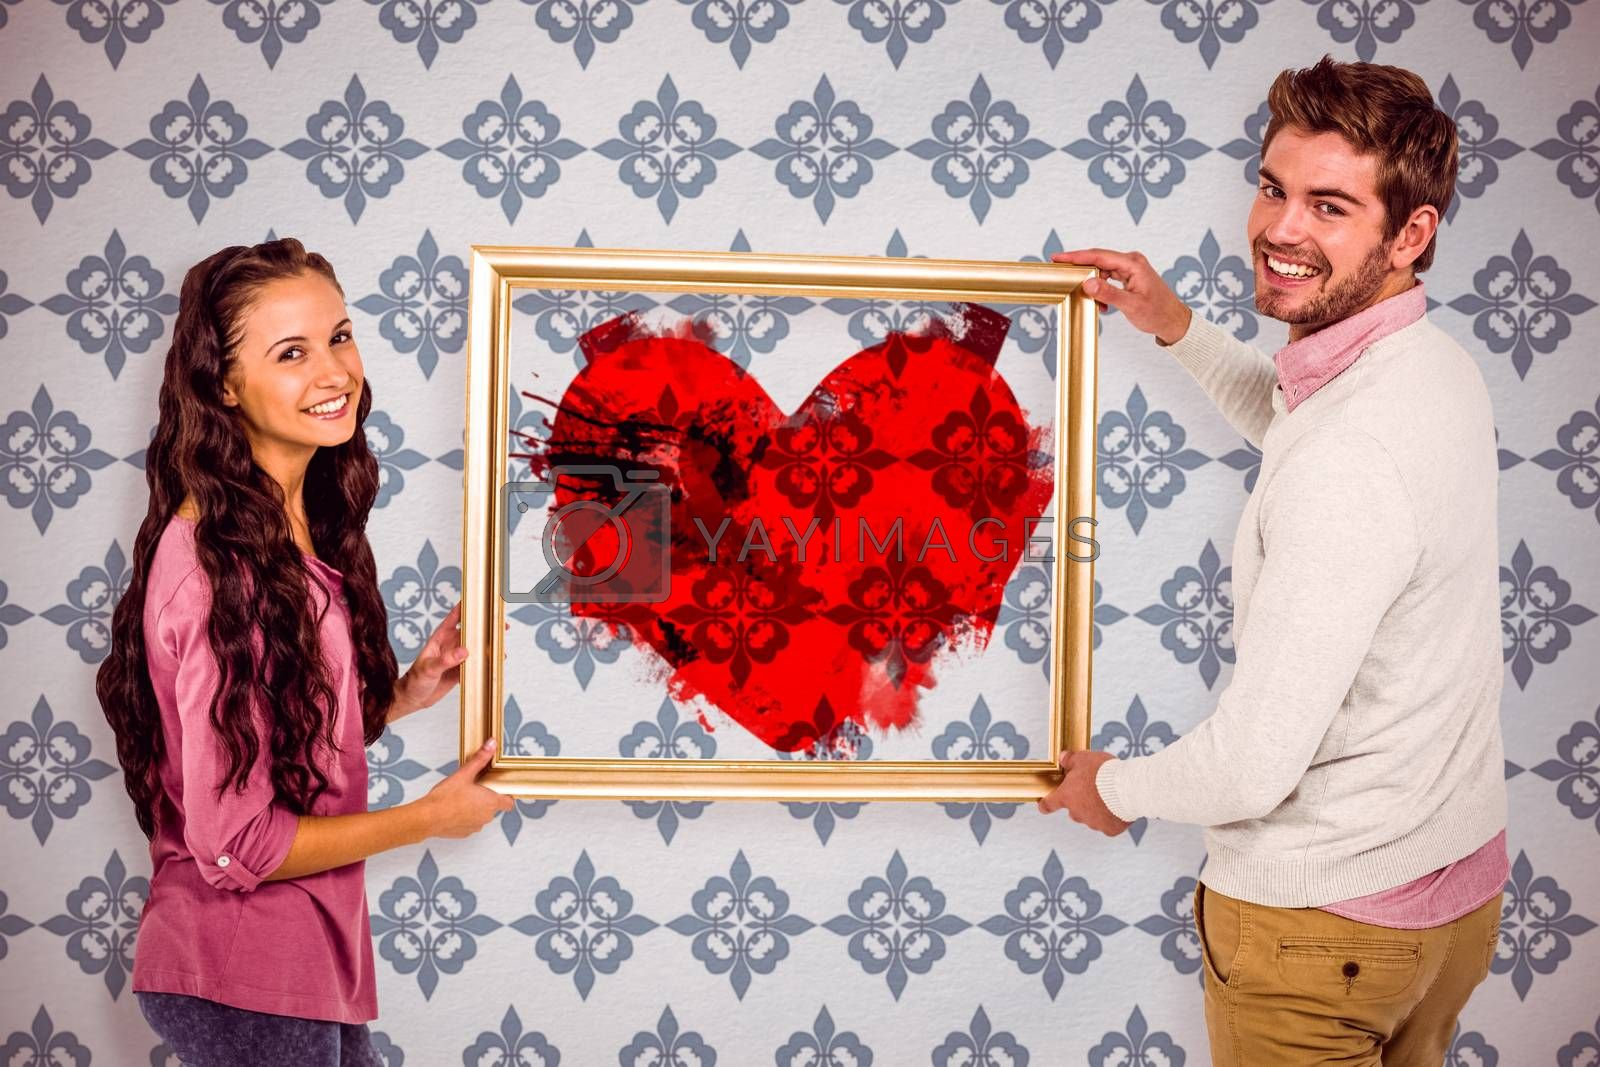 Smiling couple holding picture frame against blue background